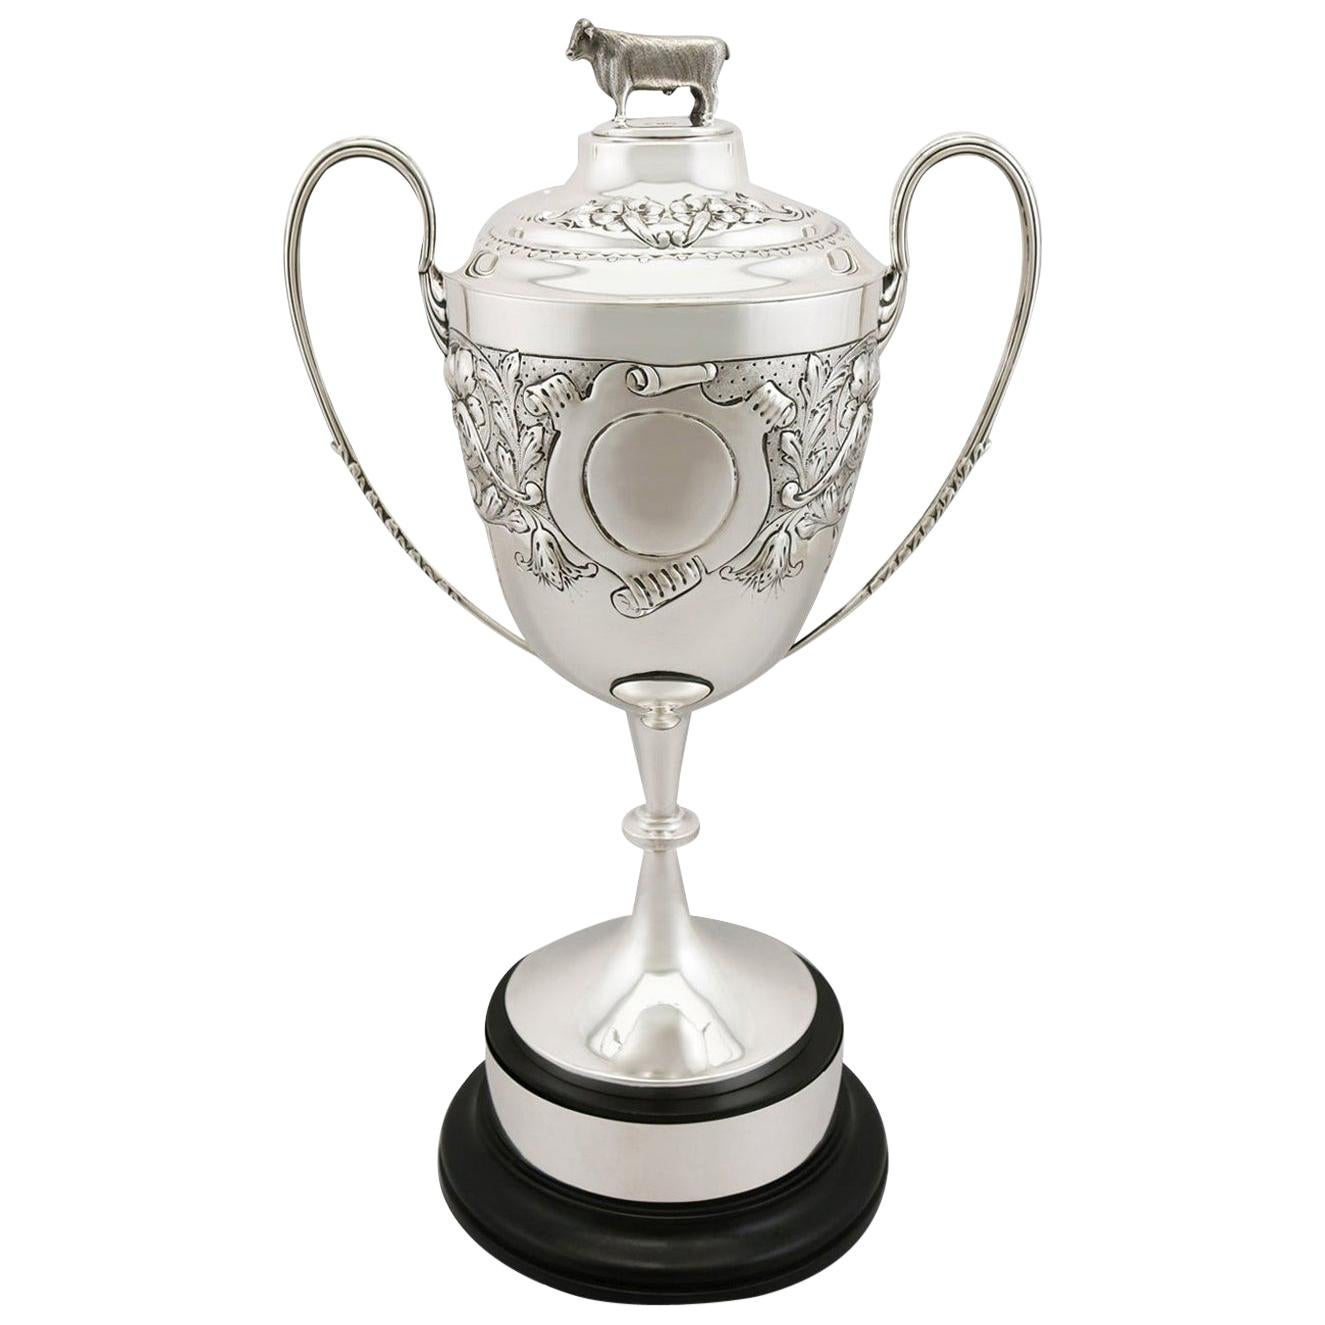 Sterling Silver Presentation Cup and Cover, Antique Edwardian, 1902